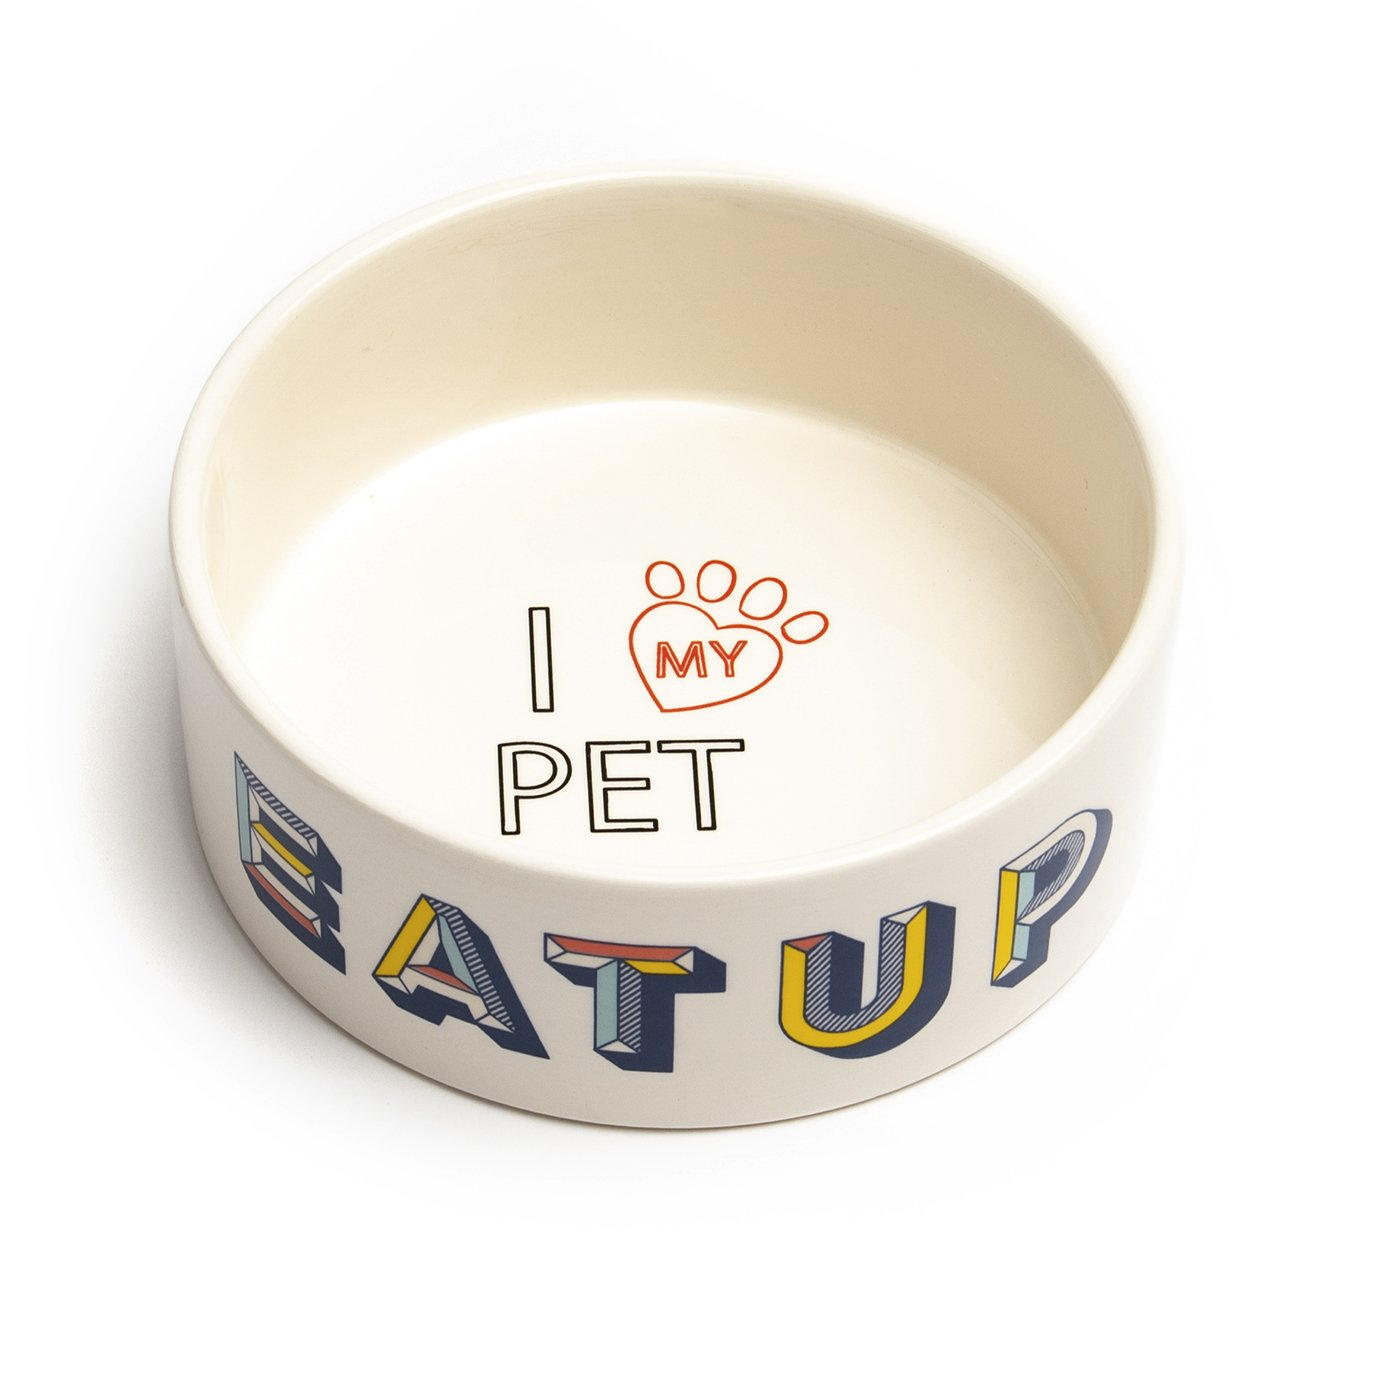 Pet Boutique - Dog Bowls - Retro Pet Bowl